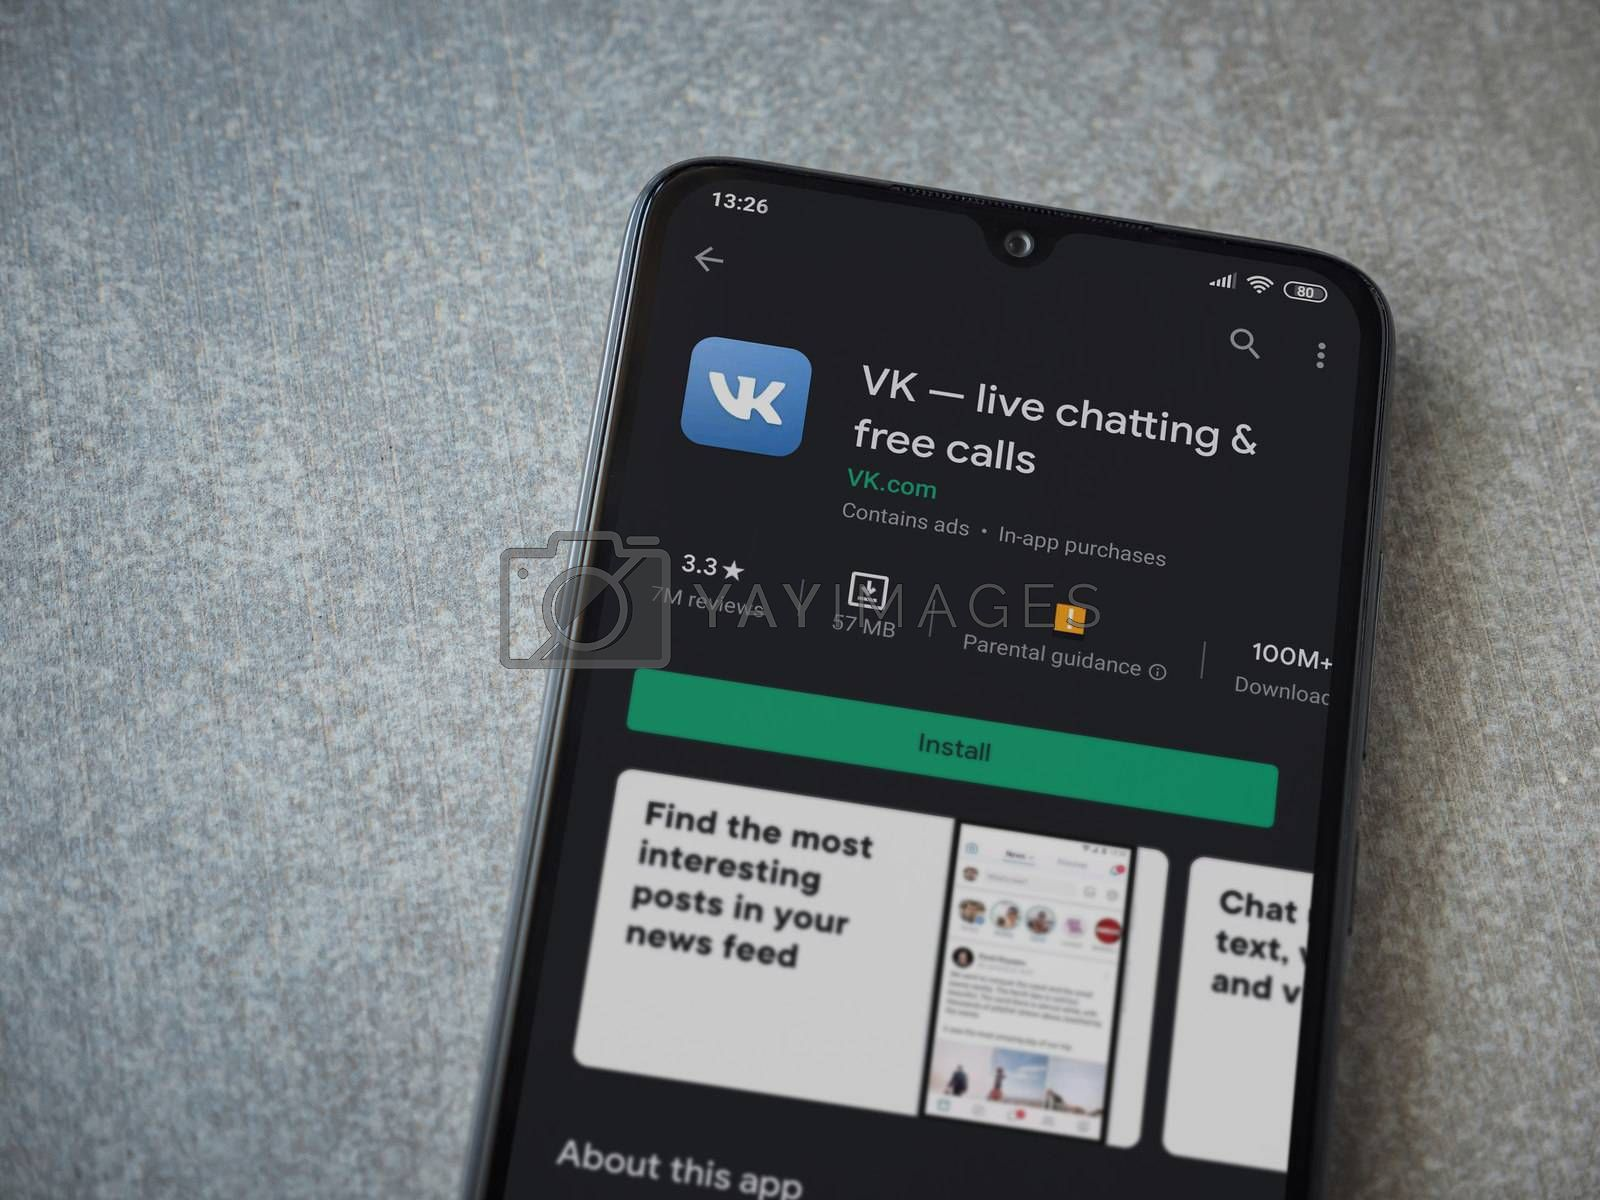 Lod, Israel - July 8, 2020: VK app play store page on the display of a black mobile smartphone on ceramic stone background. Top view flat lay with copy space.